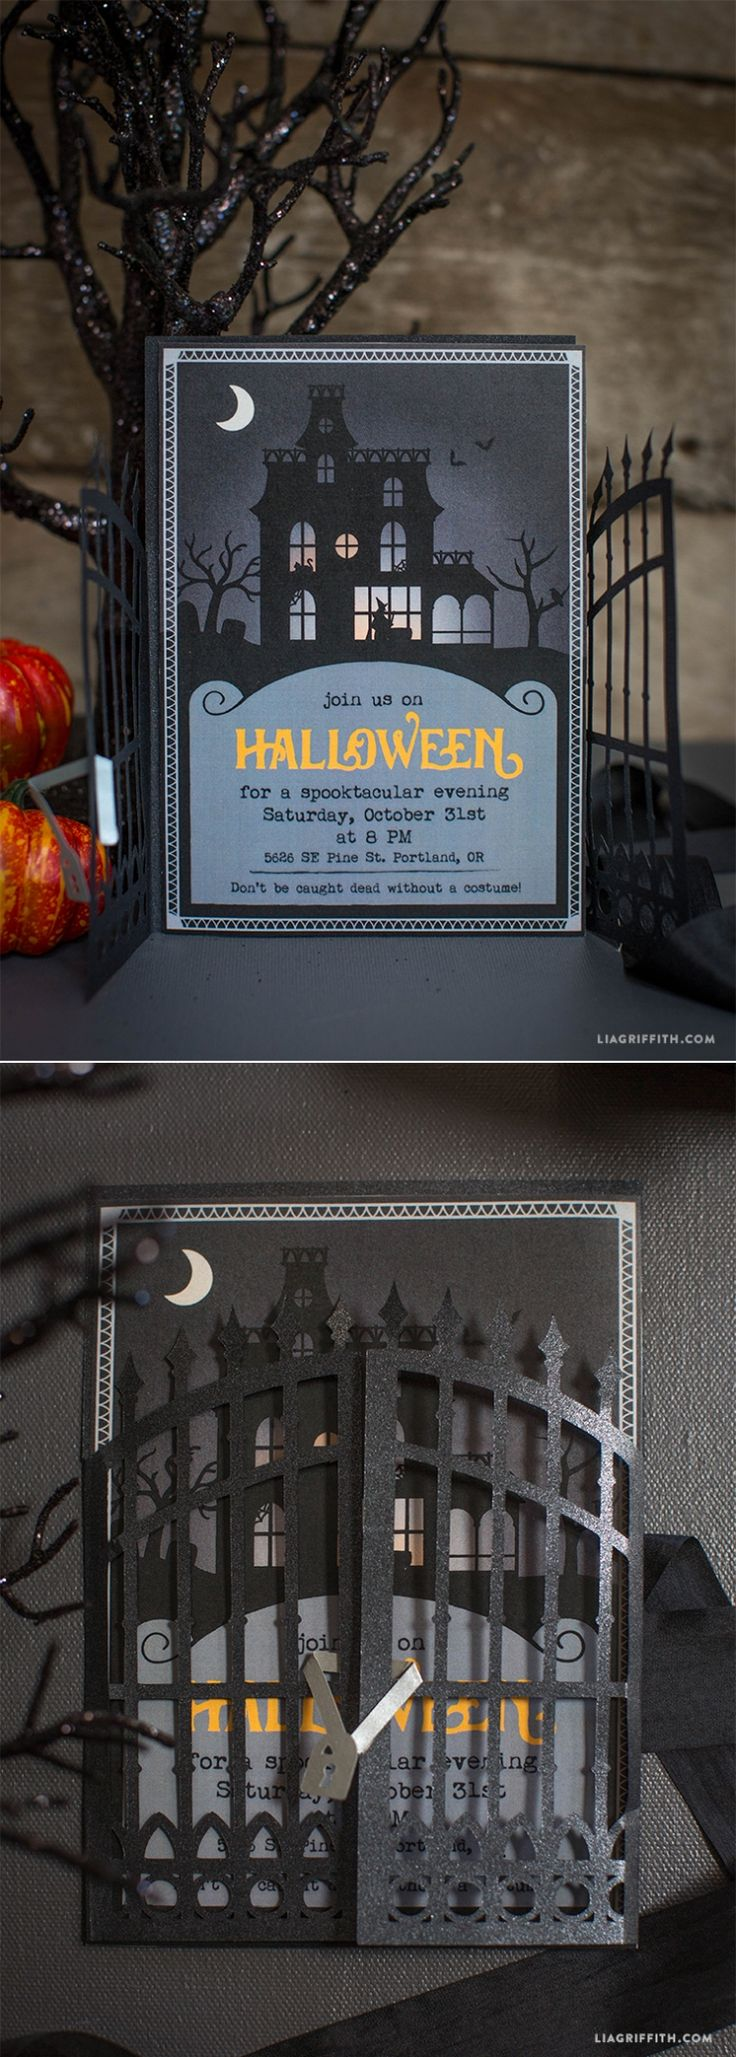 #HalloweenParty #PartyInvitation #Halloween www.LiaGriffith.com